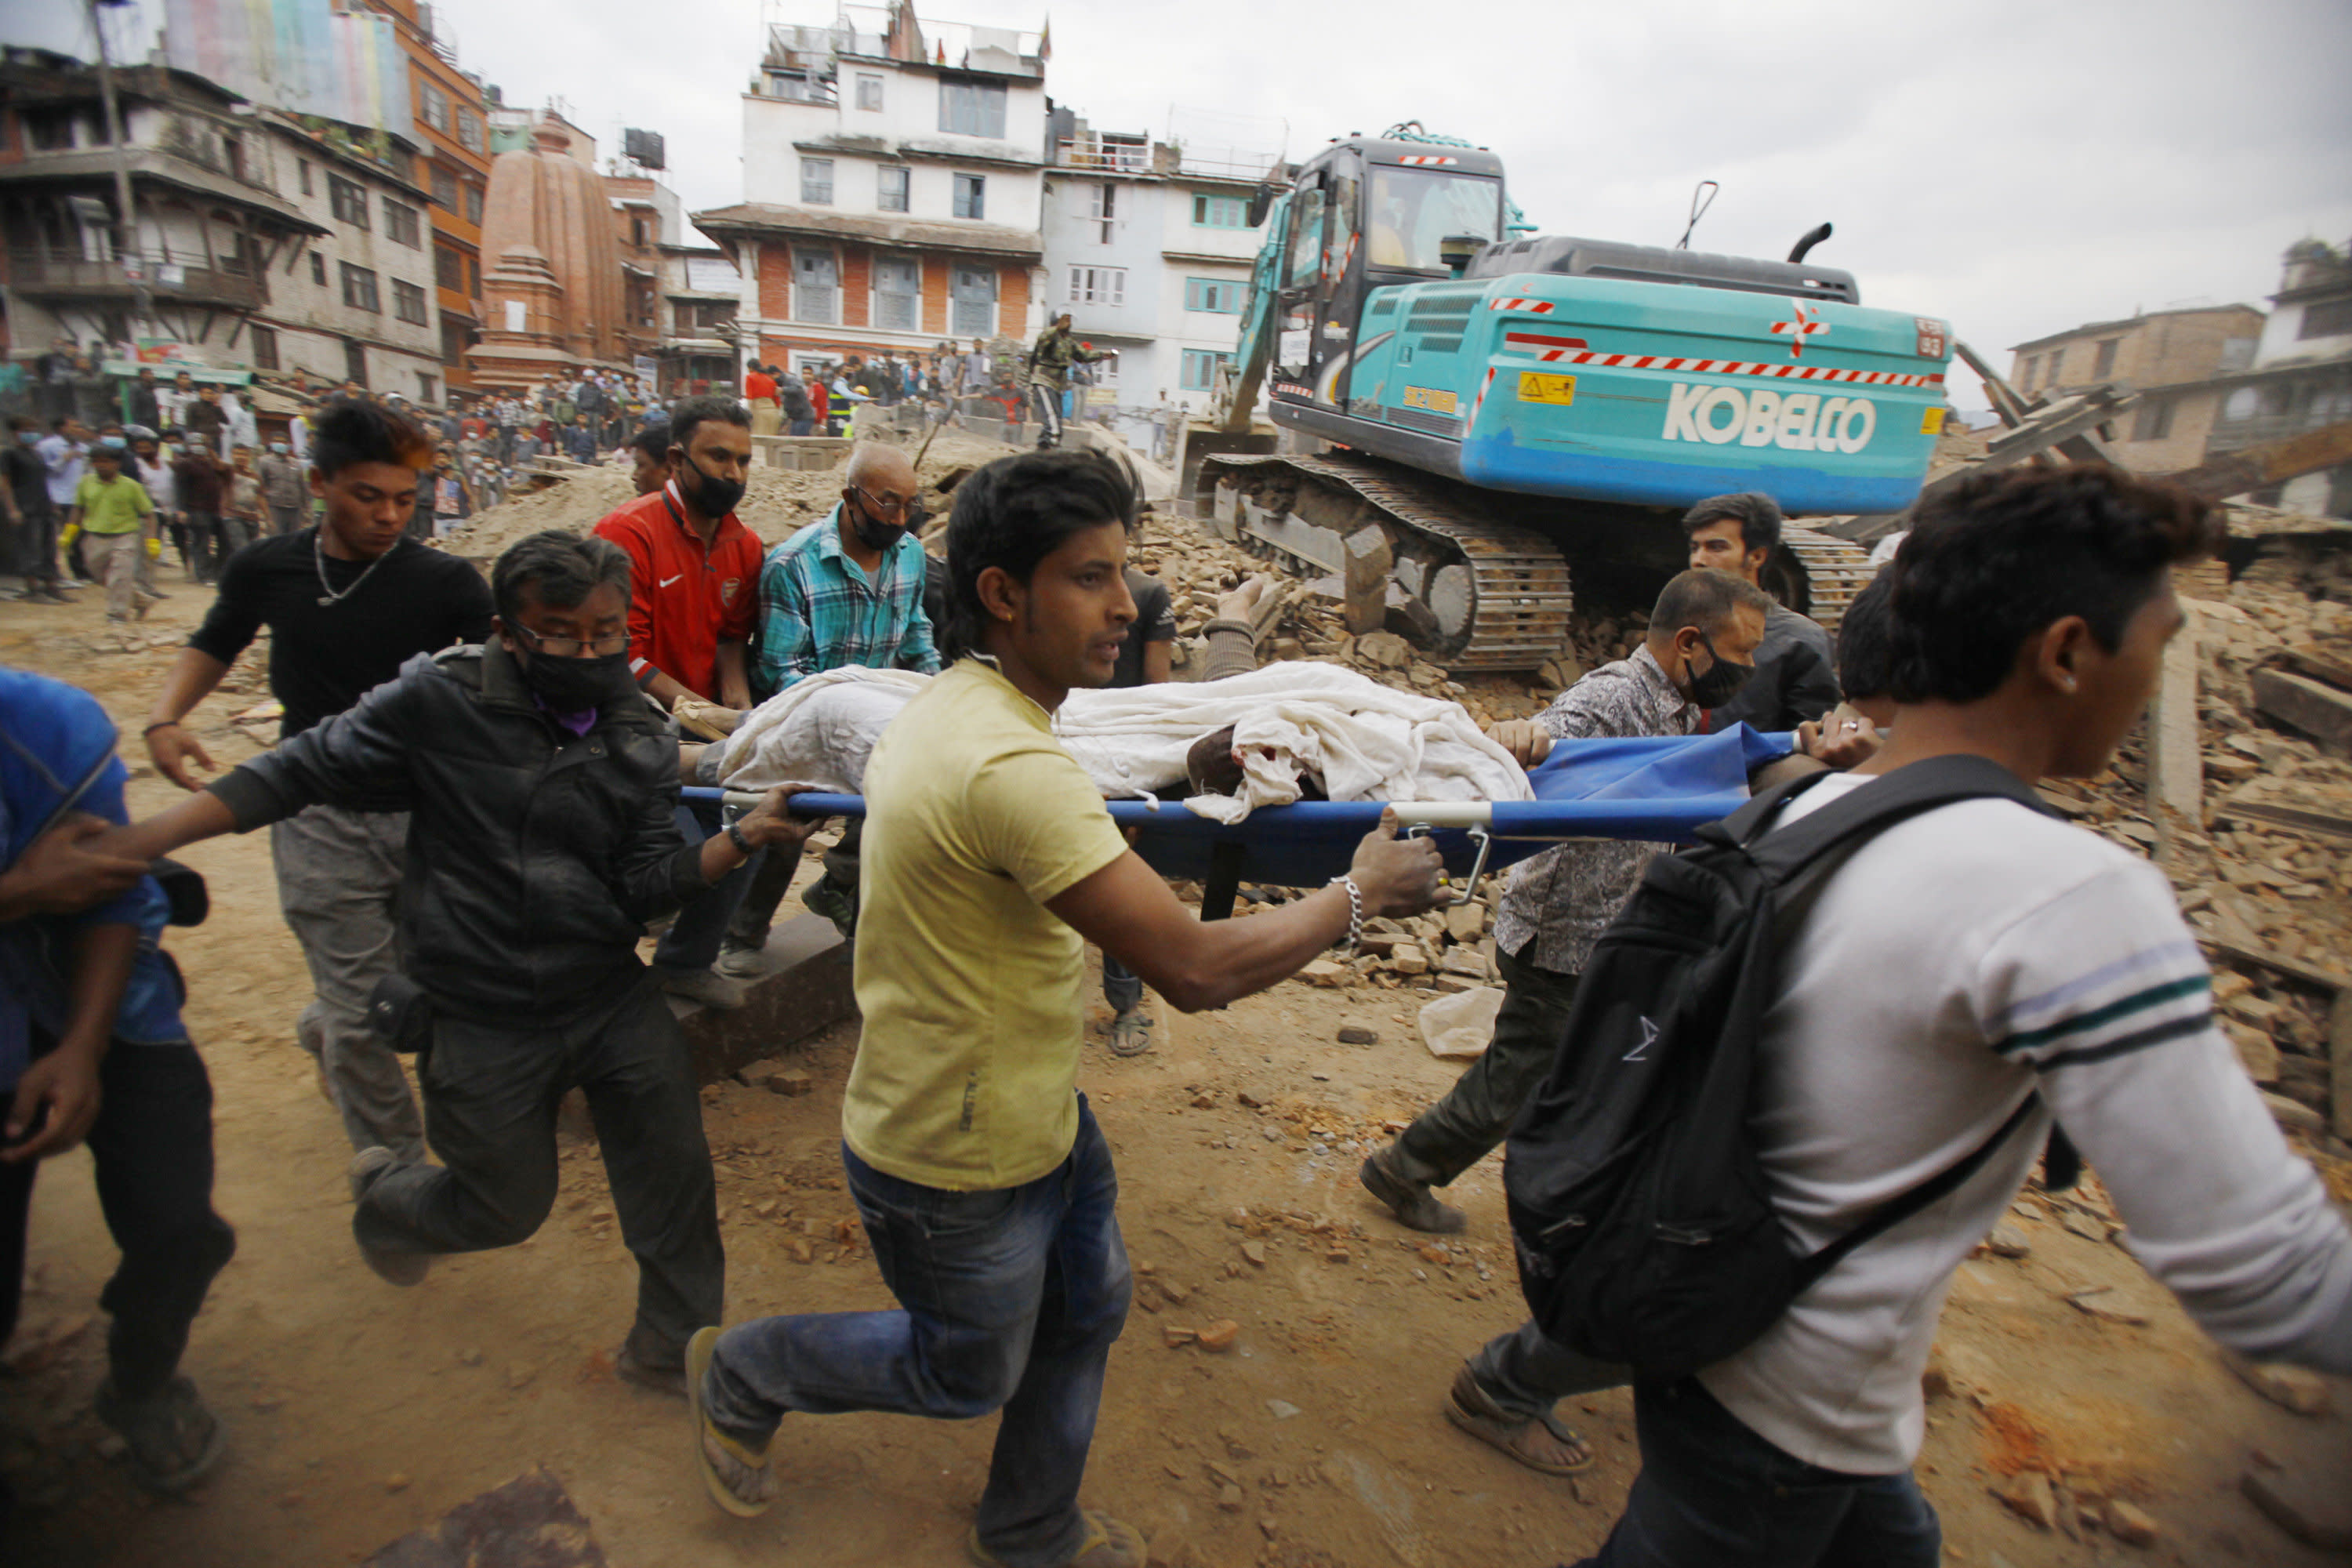 Leaders, charities offer condolences, help after Nepal quake